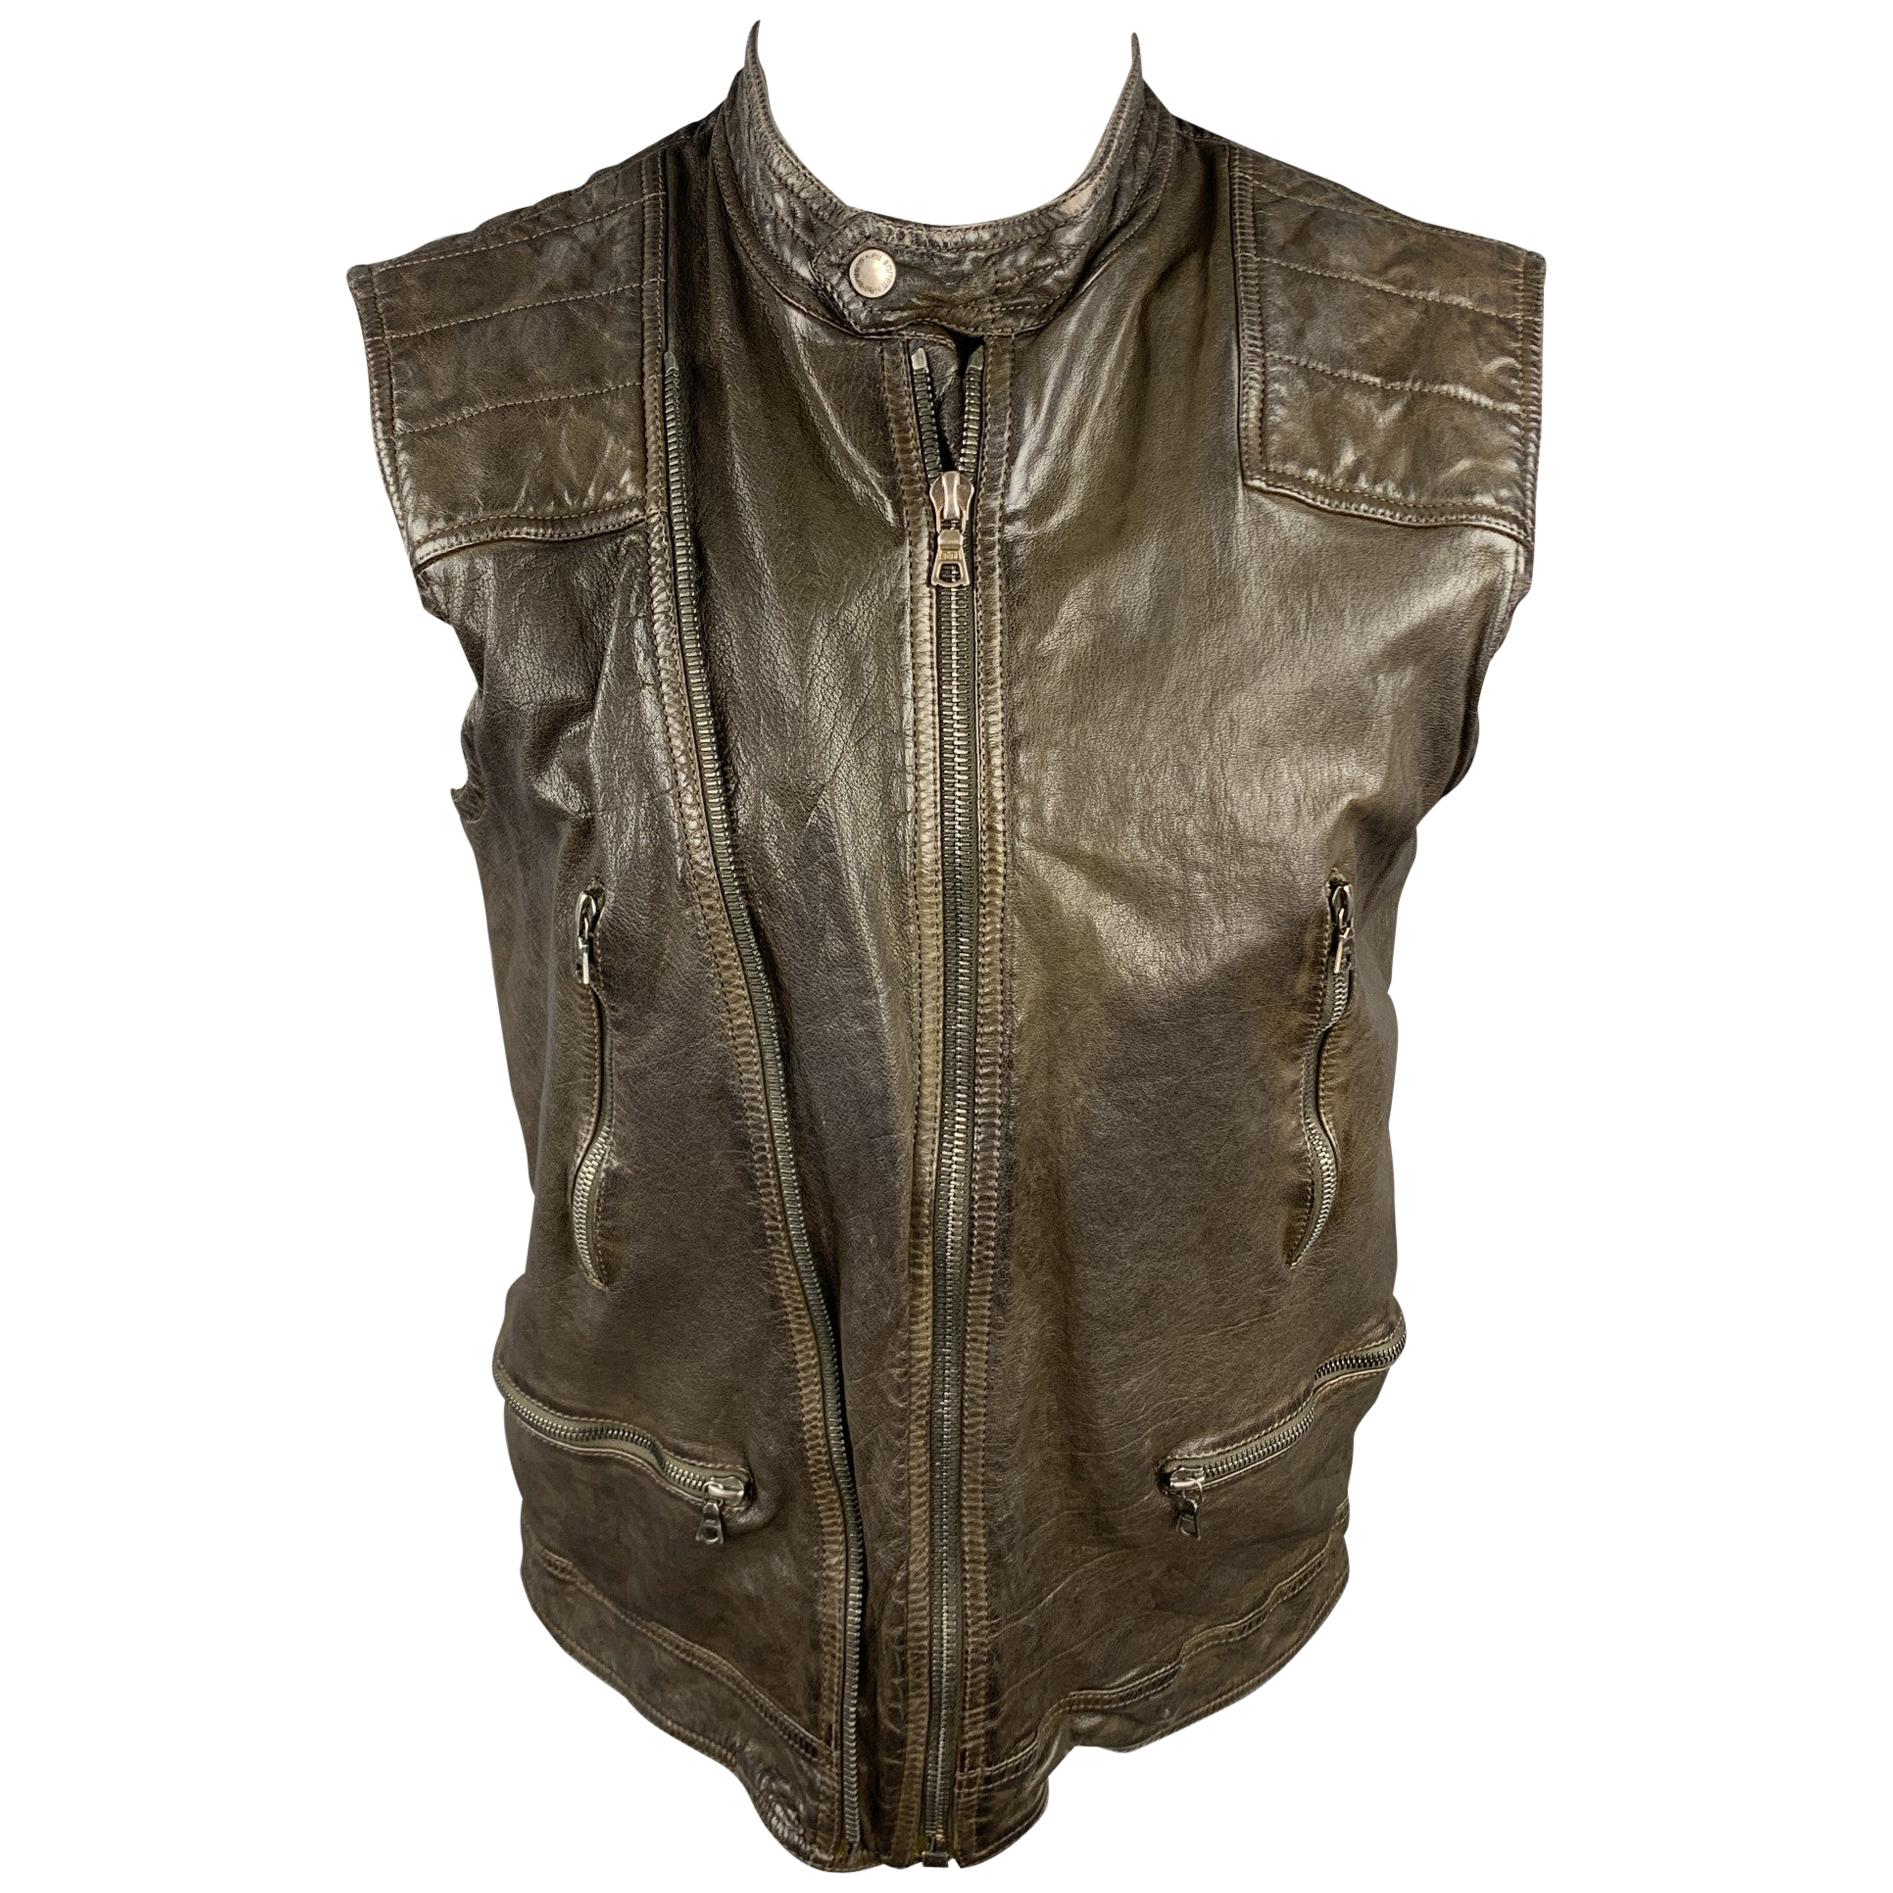 NEIL BARRETT Size S Brown 'Military' Camo Lining Distressed Leather Vest